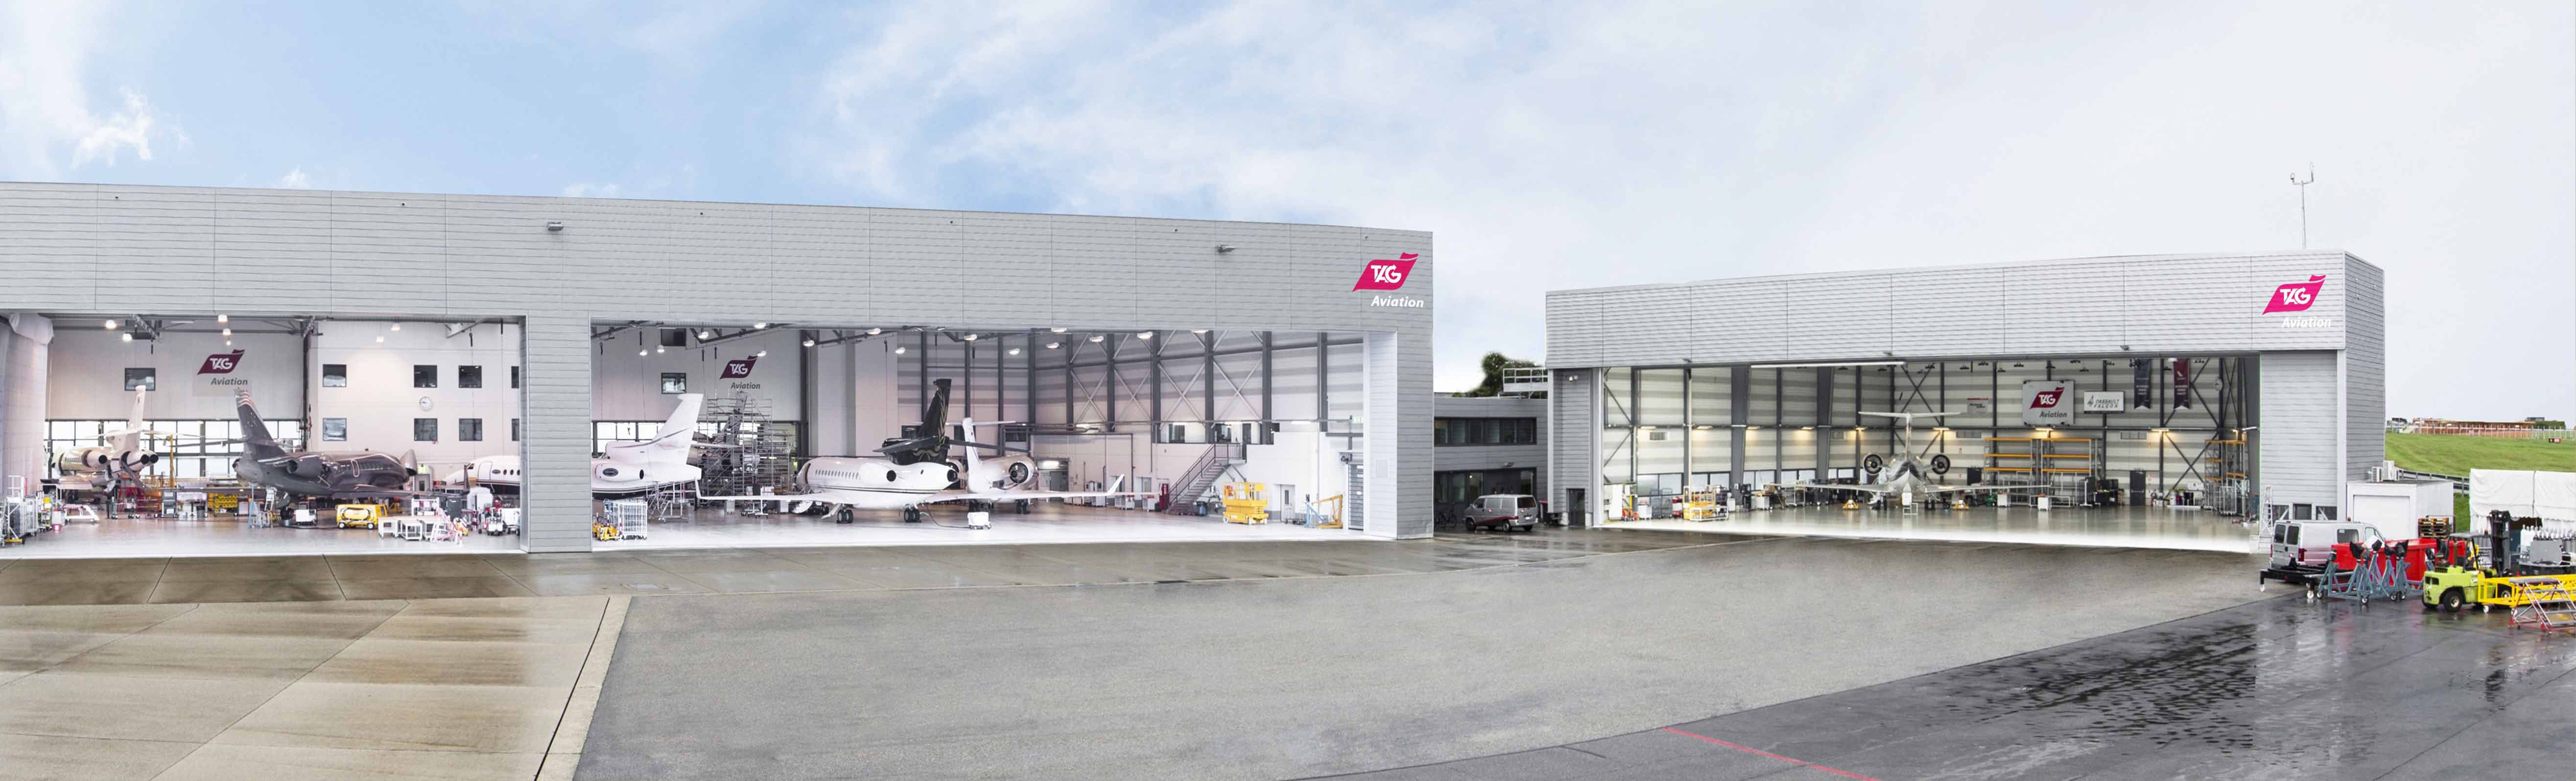 Agreement on the Acquisition of The European MRO Activities of The TAG Aviation Group by Dassault Aviation